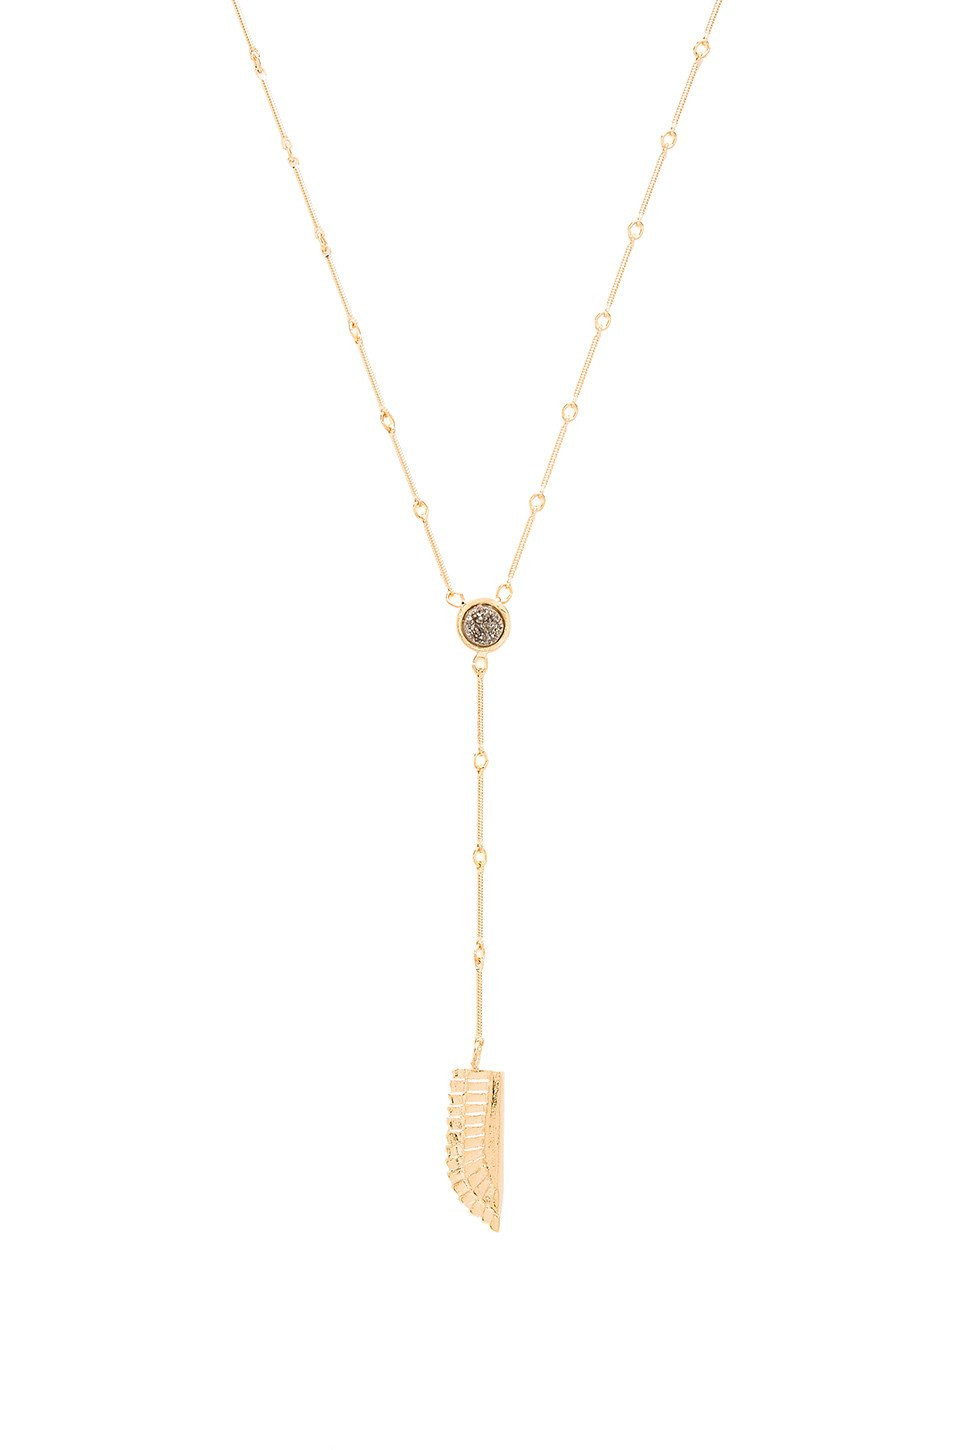 Druzy Lariat Necklace - Kustom Label - 1